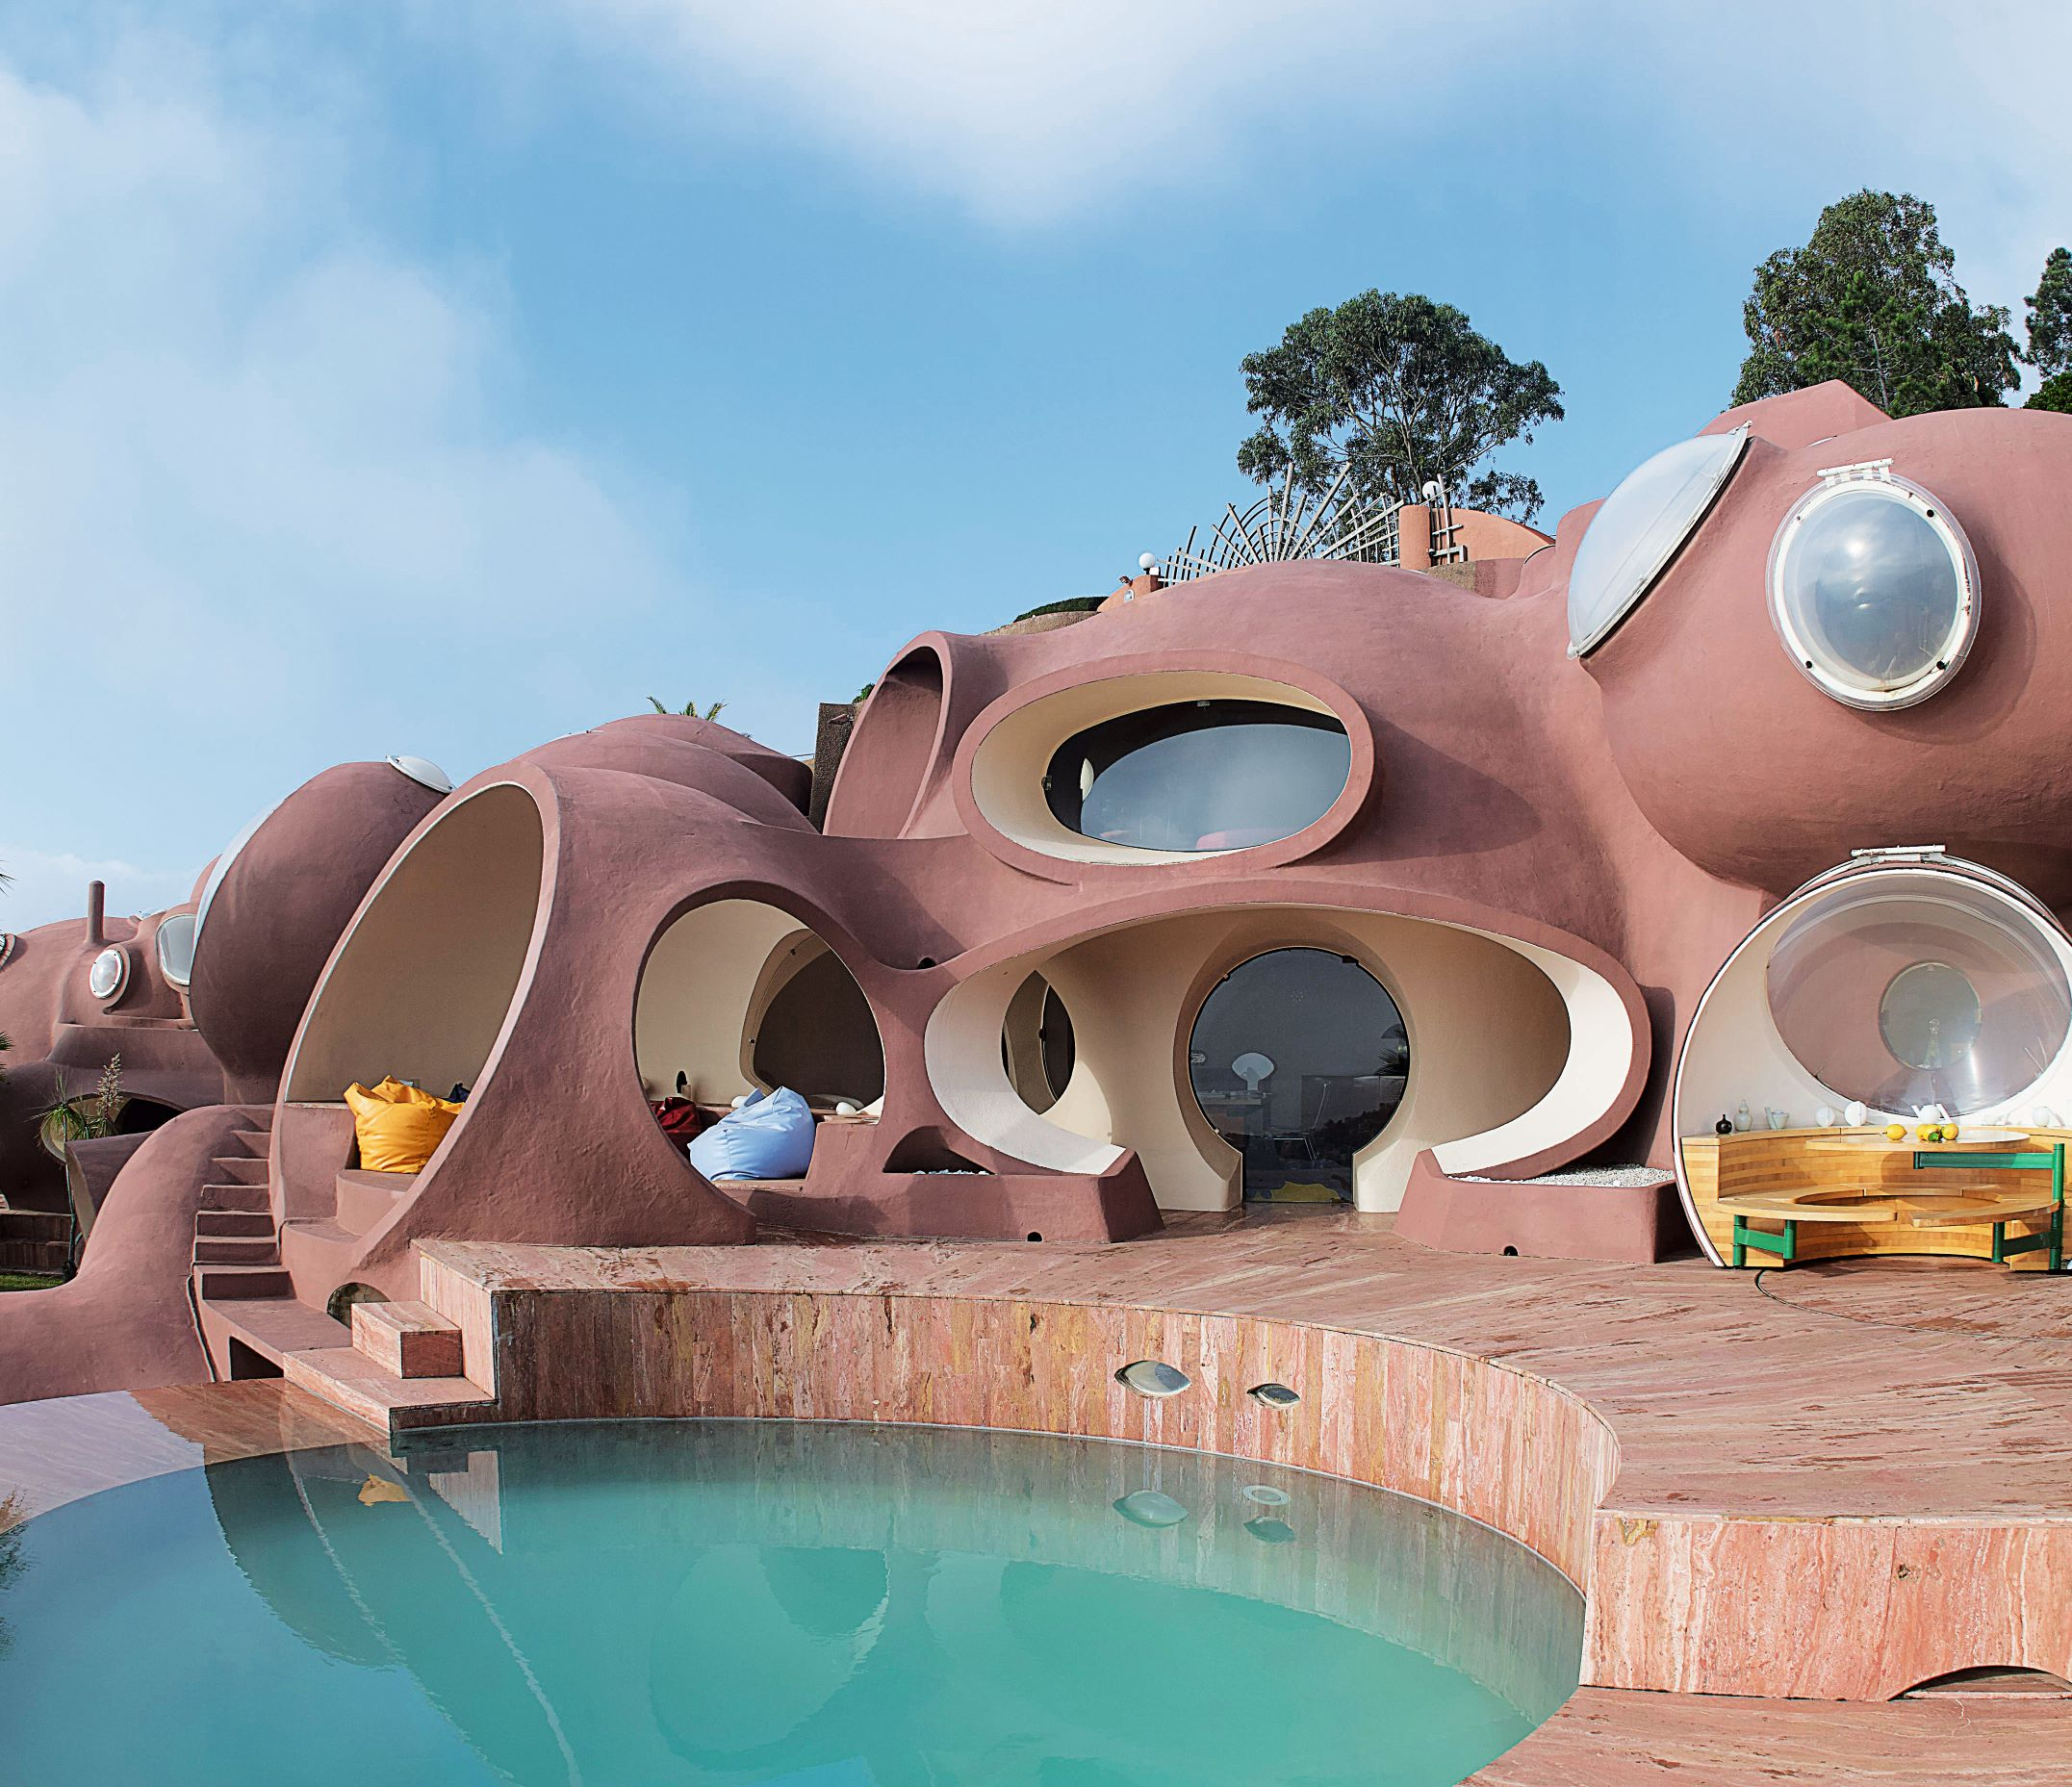 The Bubble Palace, Théoule-sur-Mer, France